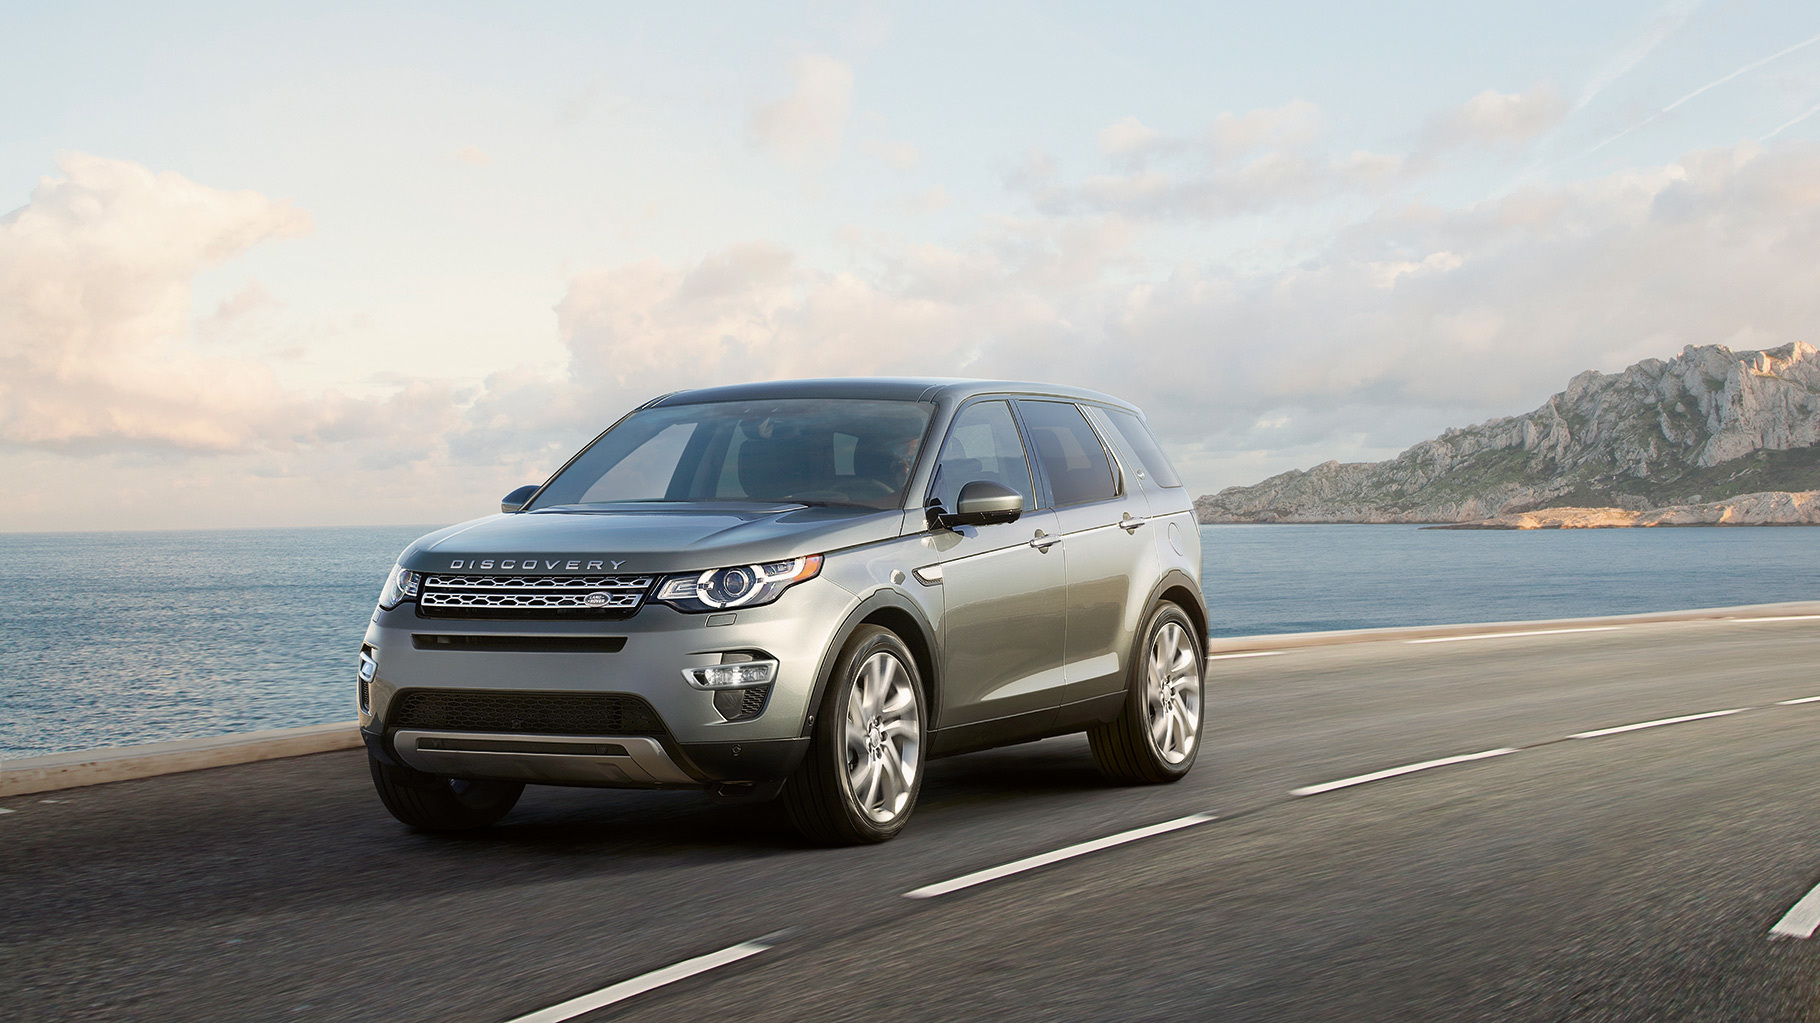 landrovermerriamparts for and parts equipment replacement com our now your genuine accessories evoque original land rover range catalog landrover shop